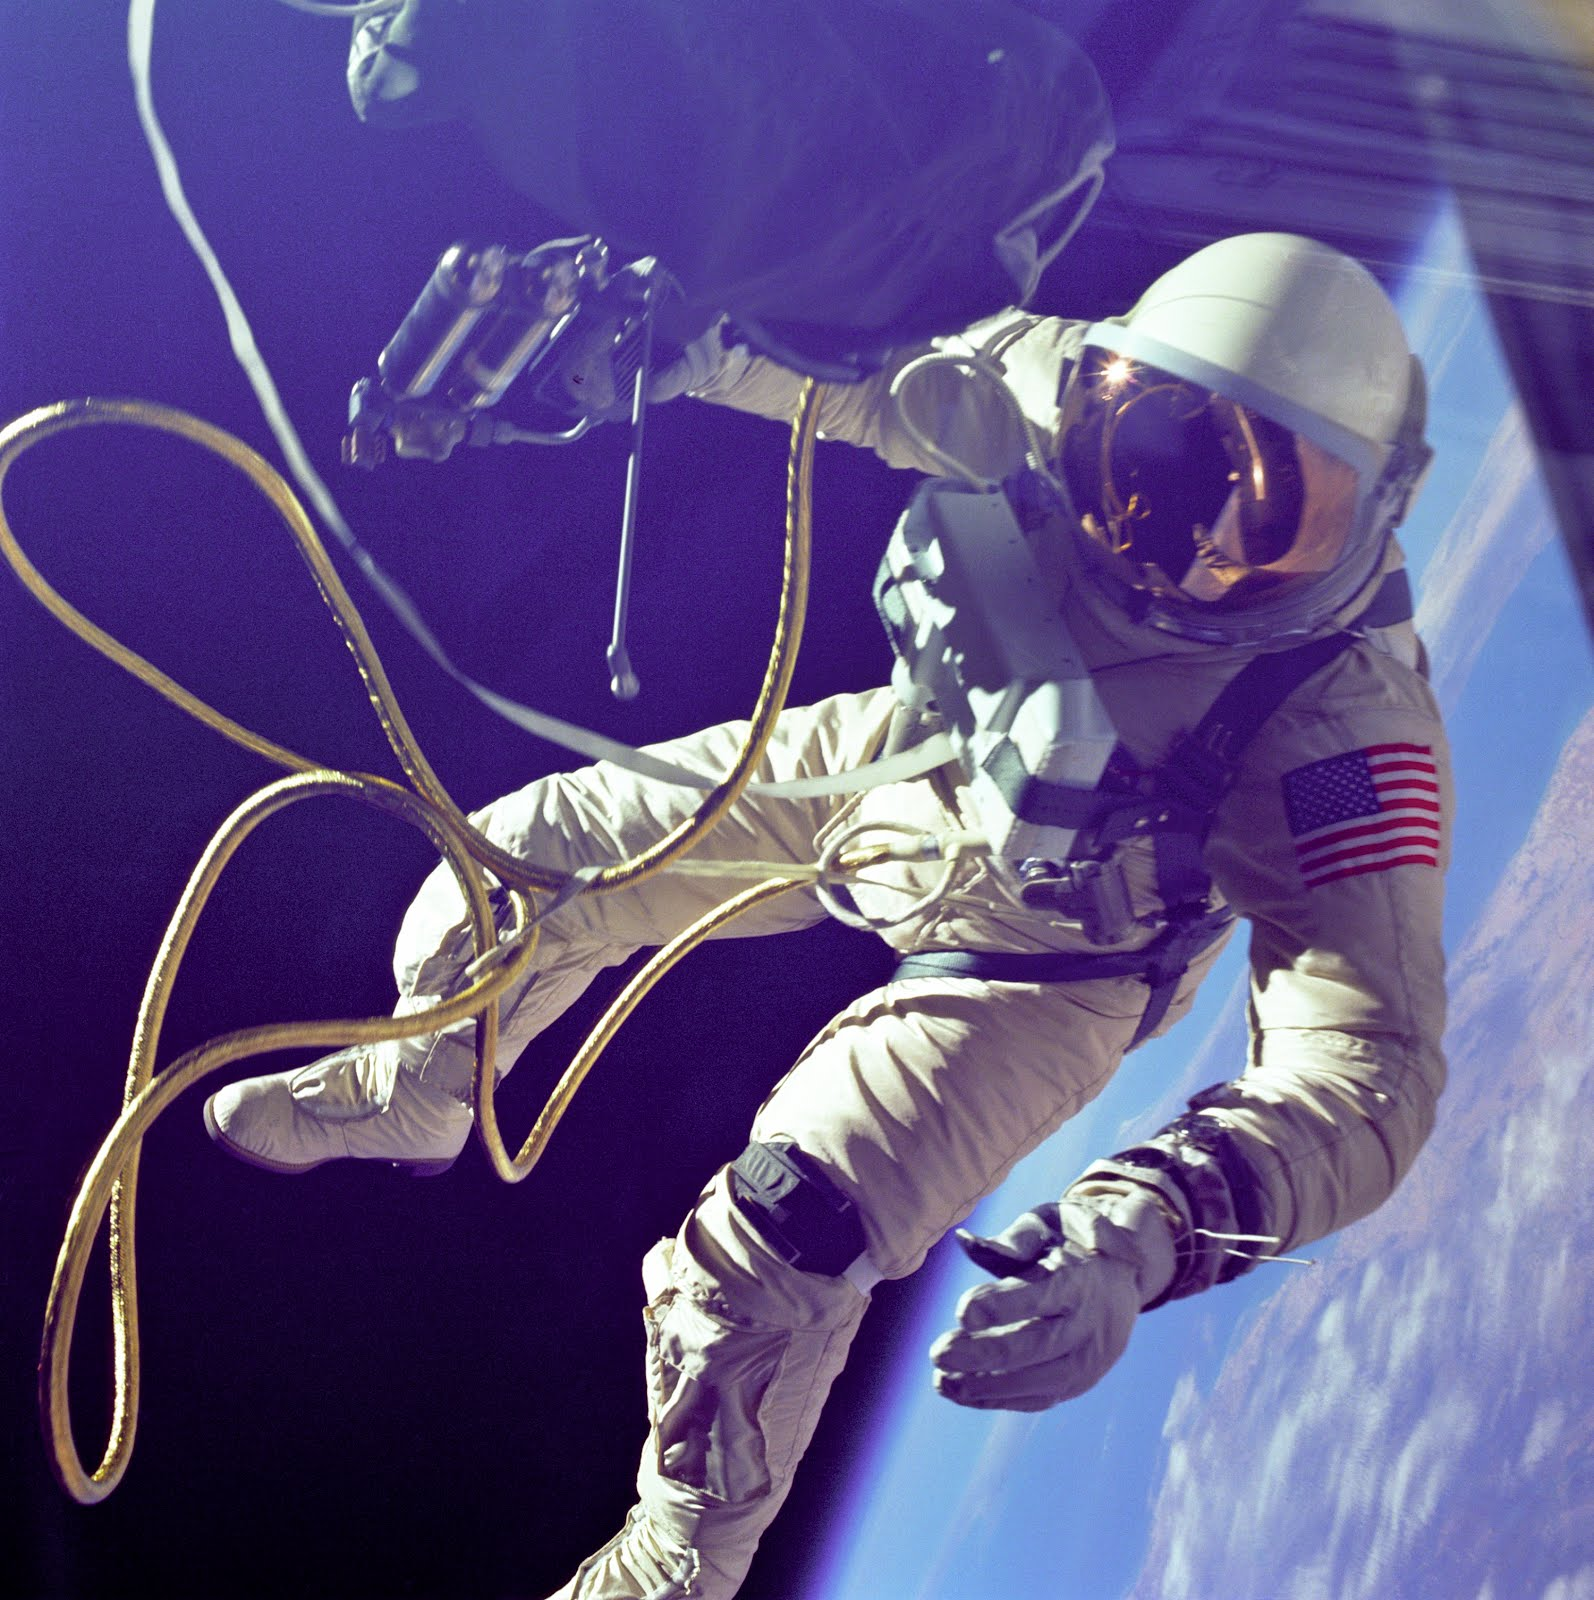 Edward White Gemini 4 EVA Spacewalk